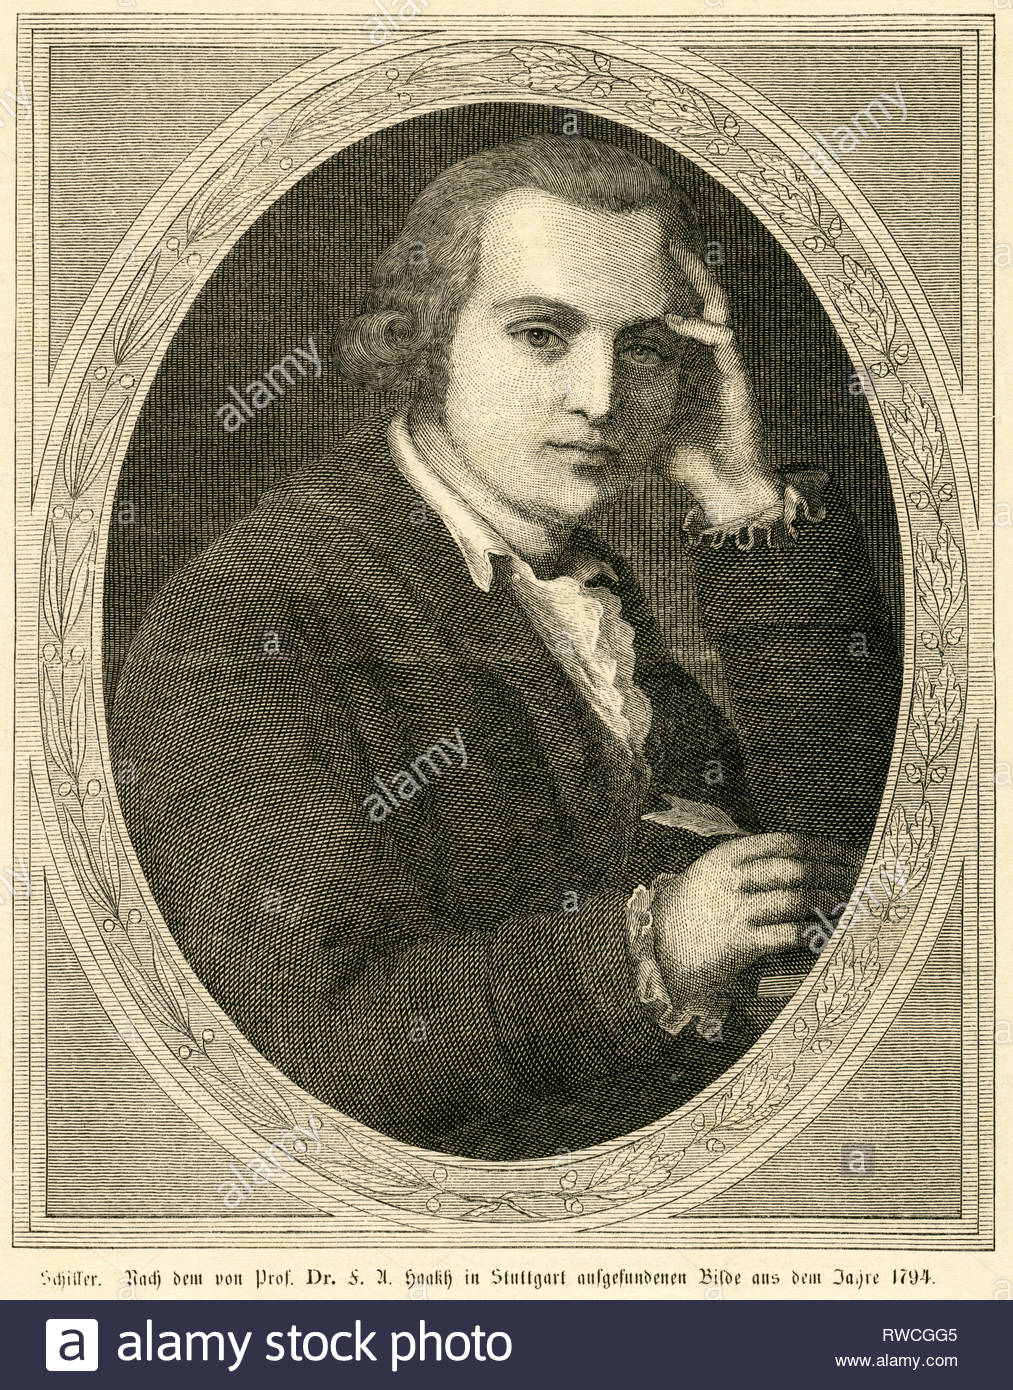 Germany,  Baden-Württemberg,  Marbach, Friedrich Schiller, German poet, wood engraving printed in a newspaper of the 1860th? after an painting, founded by Prof. Dr. F. A. Haakh in Stuttgart, from the year 1794., Artist's Copyright must also be cleared - Stock Image